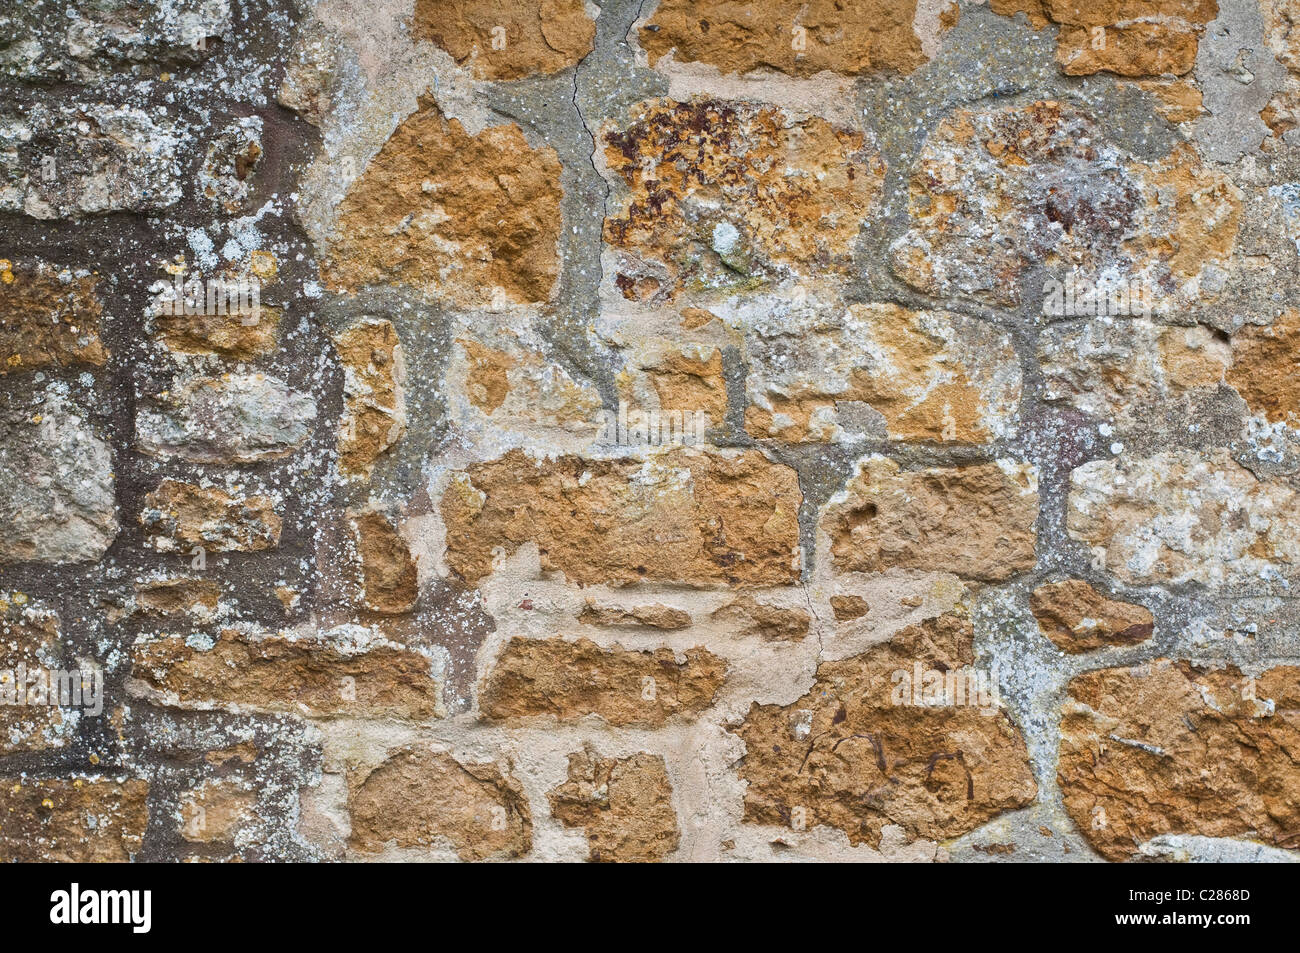 The texture of a stone masonry wall in England, UK. - Stock Image